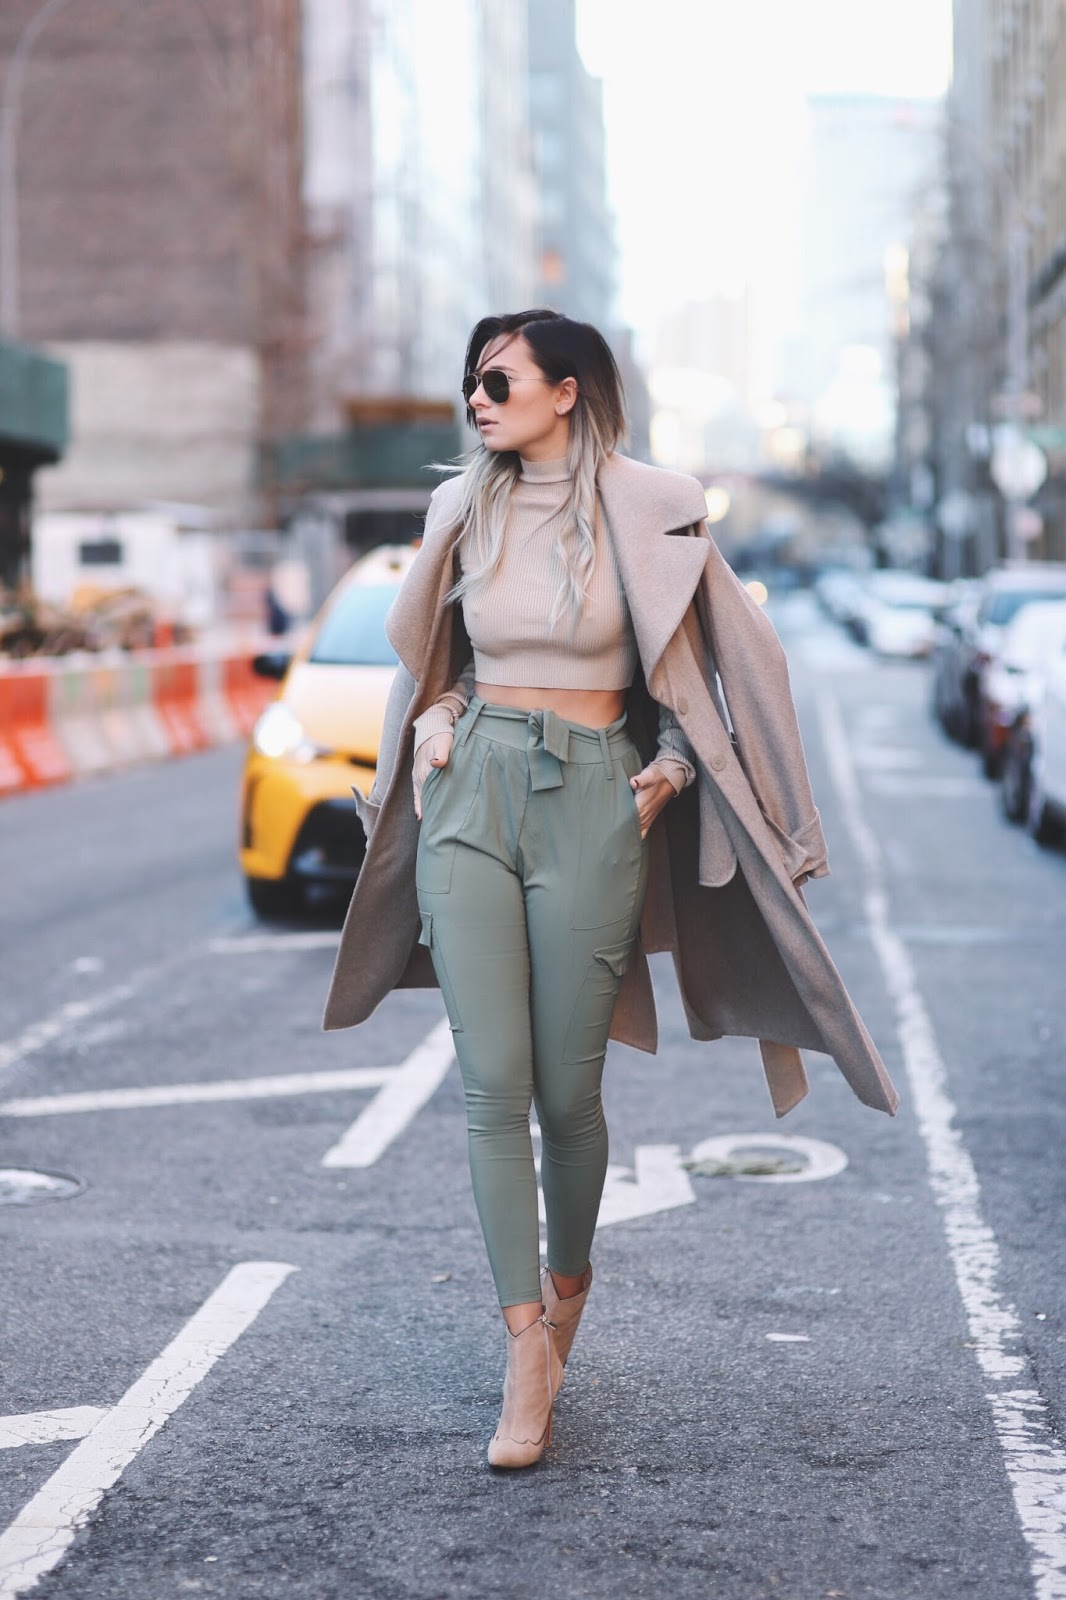 We Wore What - Topshop Khaki Pants + Nude Crop Top